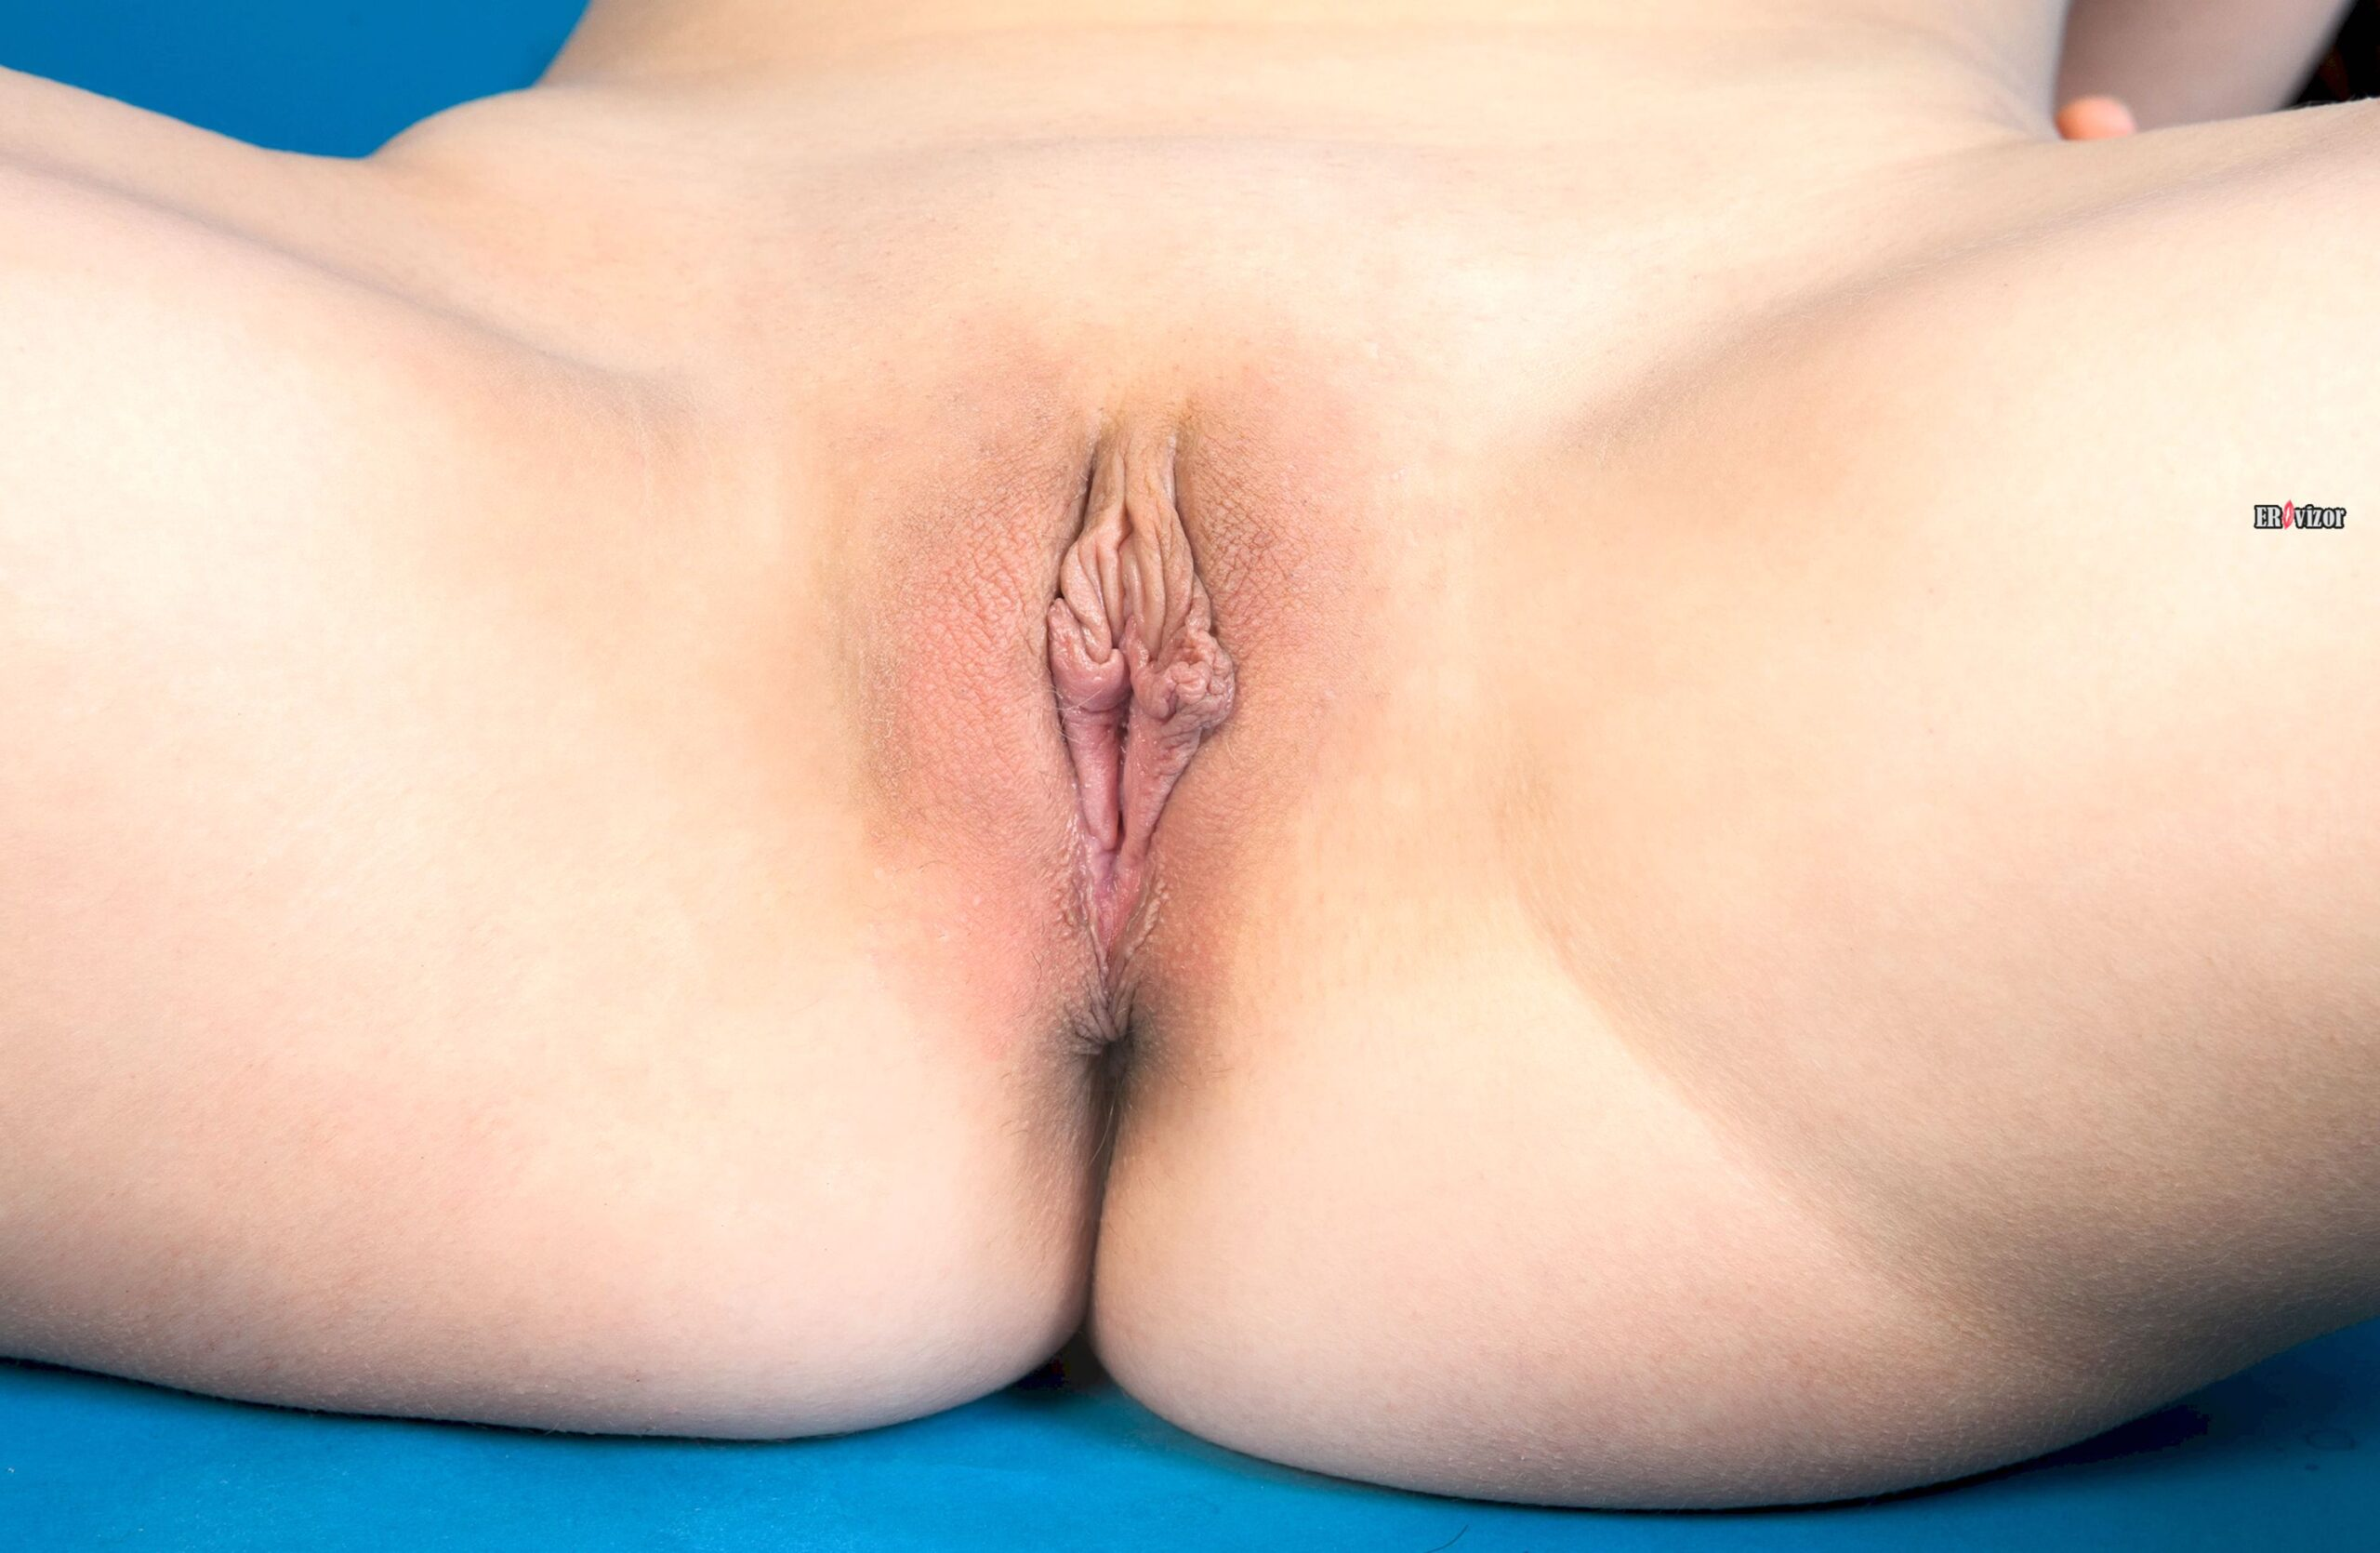 Nude-Shaved-Babe-Norma-Joel-with-Epic-Butthole-21